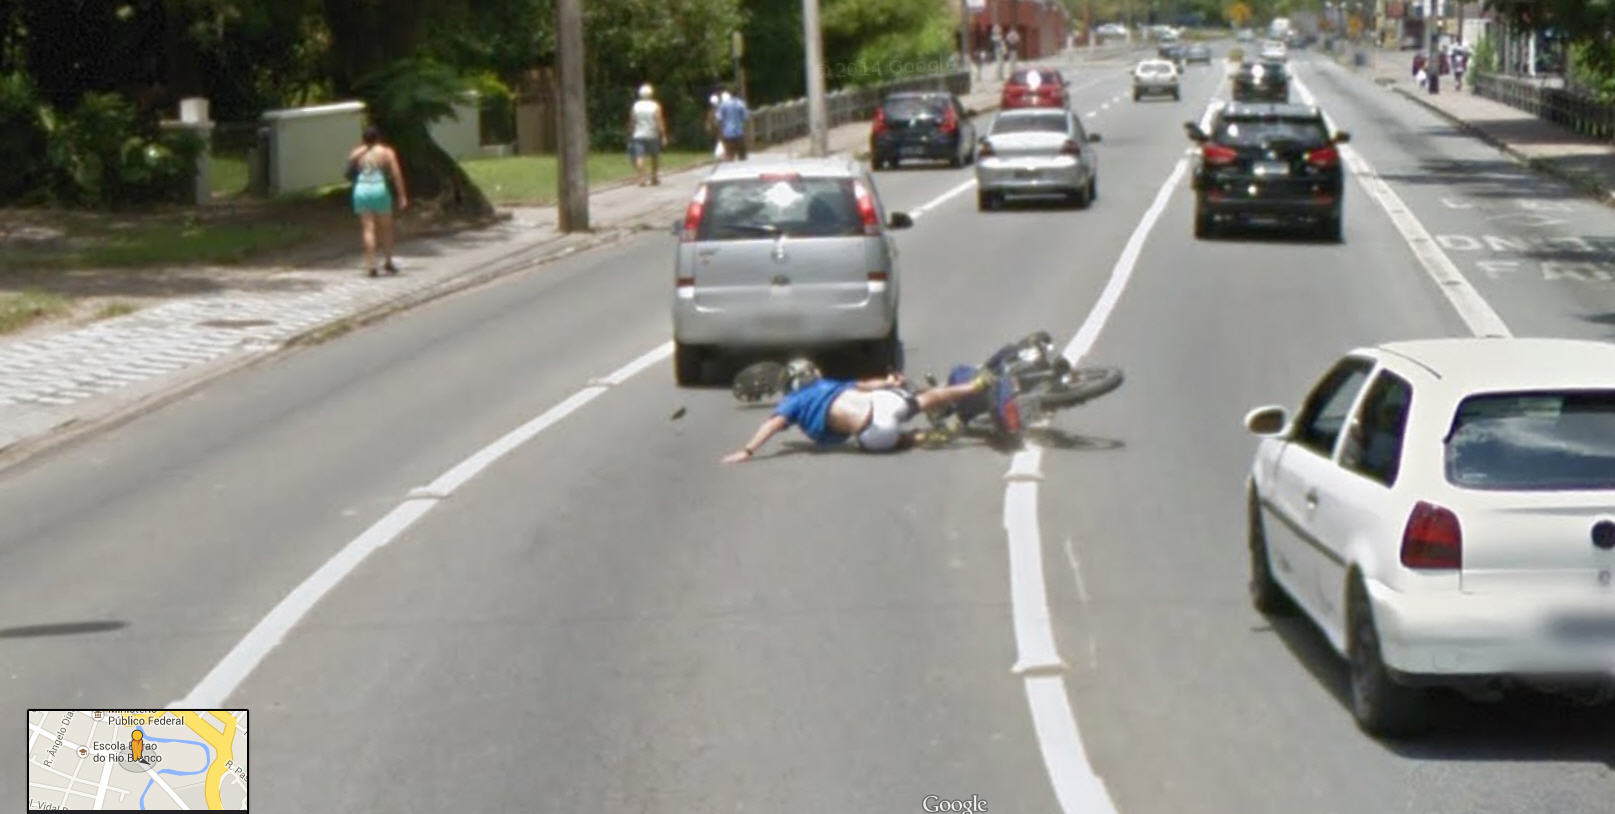 motorcycle accident captured frame by frame via google street view google street view world. Black Bedroom Furniture Sets. Home Design Ideas